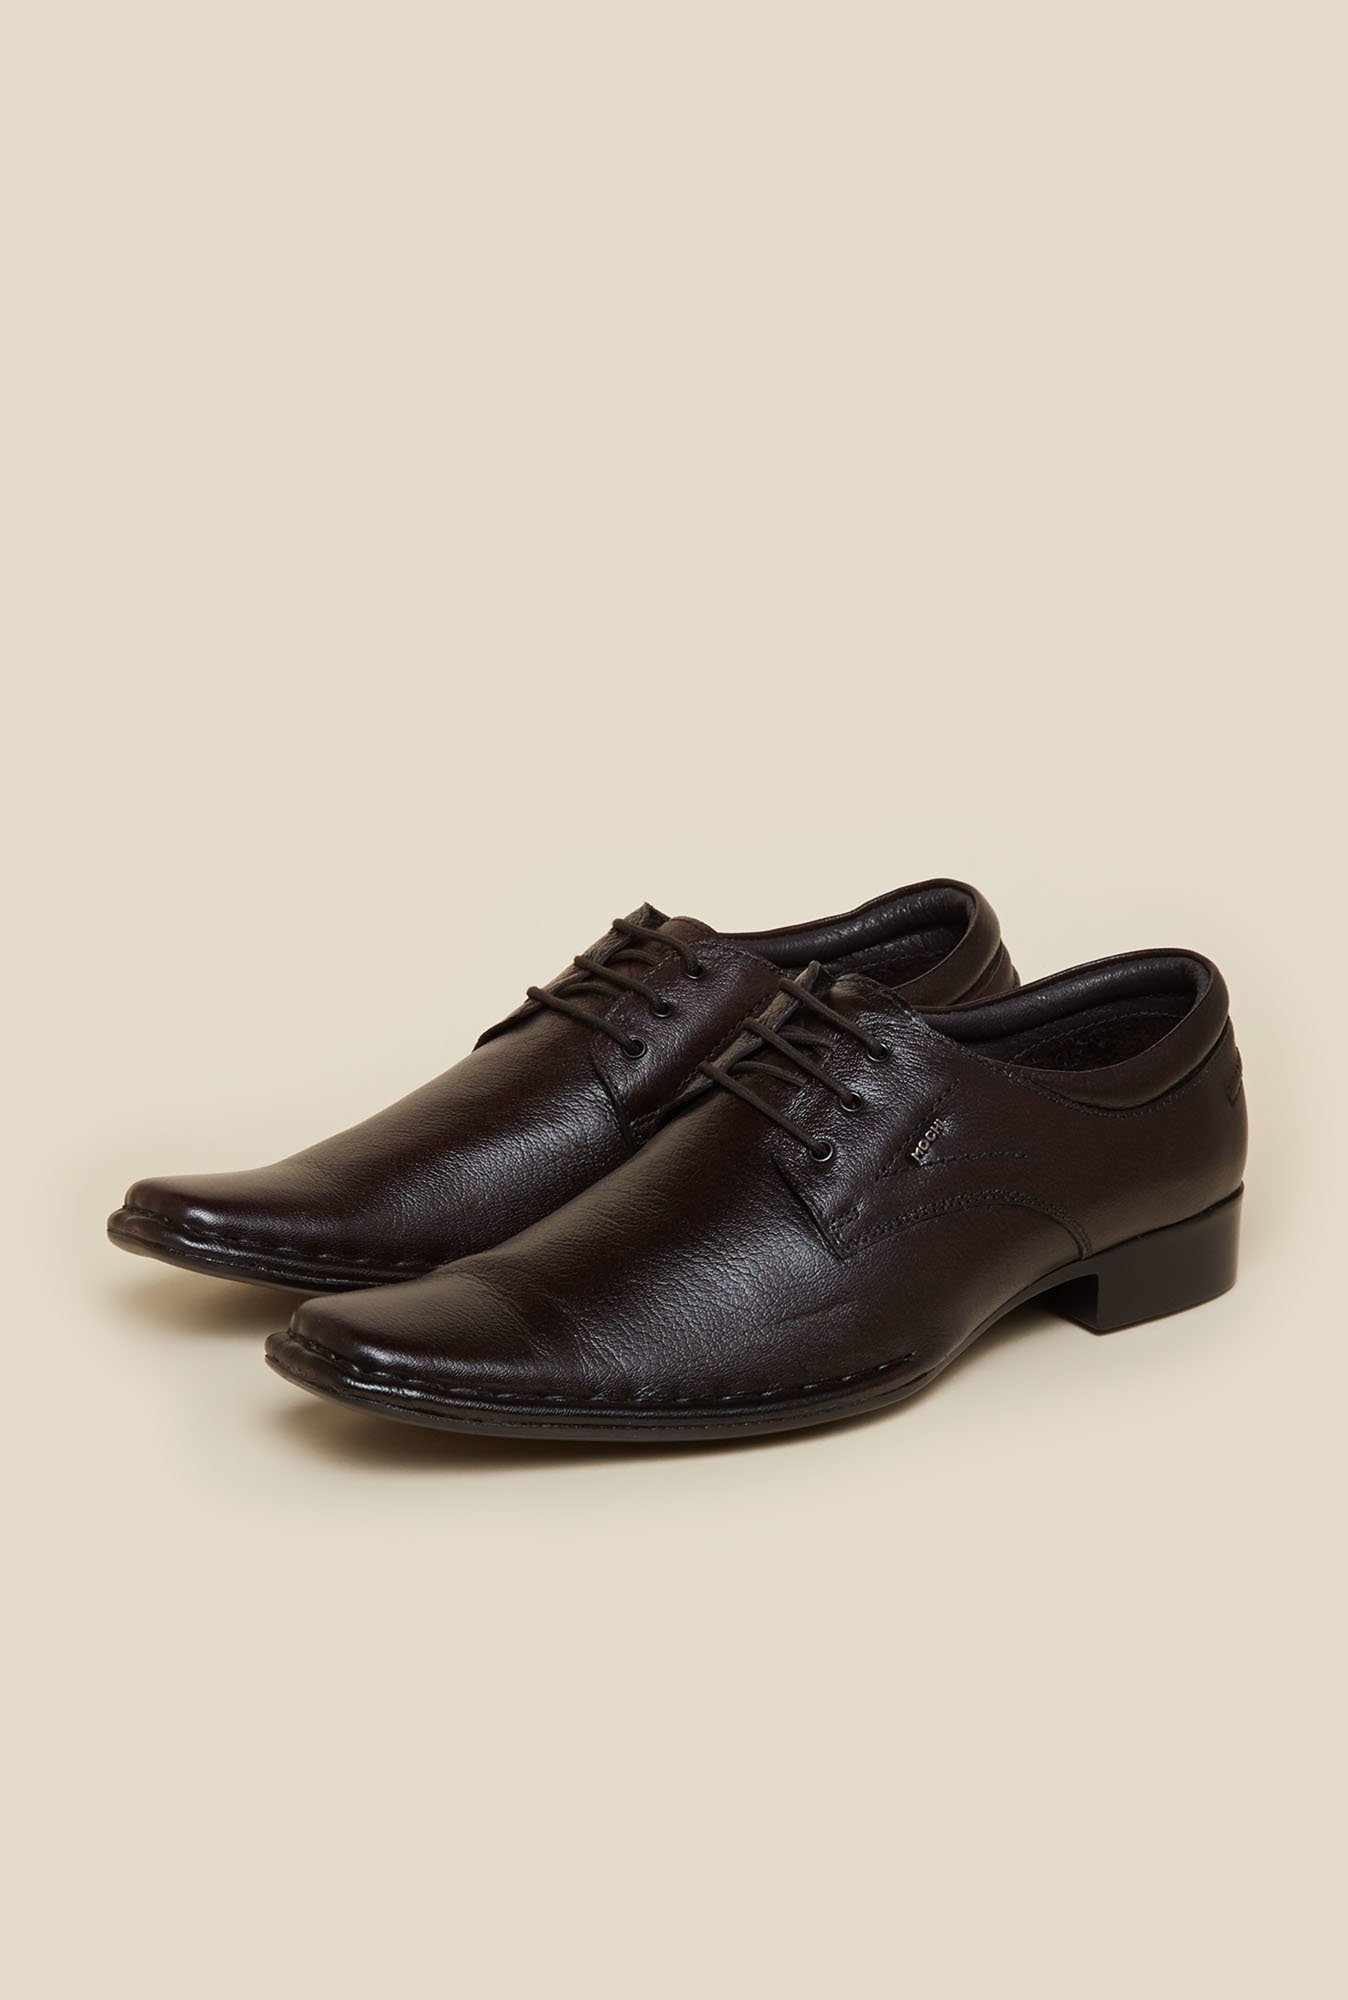 Mochi Dark Brown Leather Derby Shoes